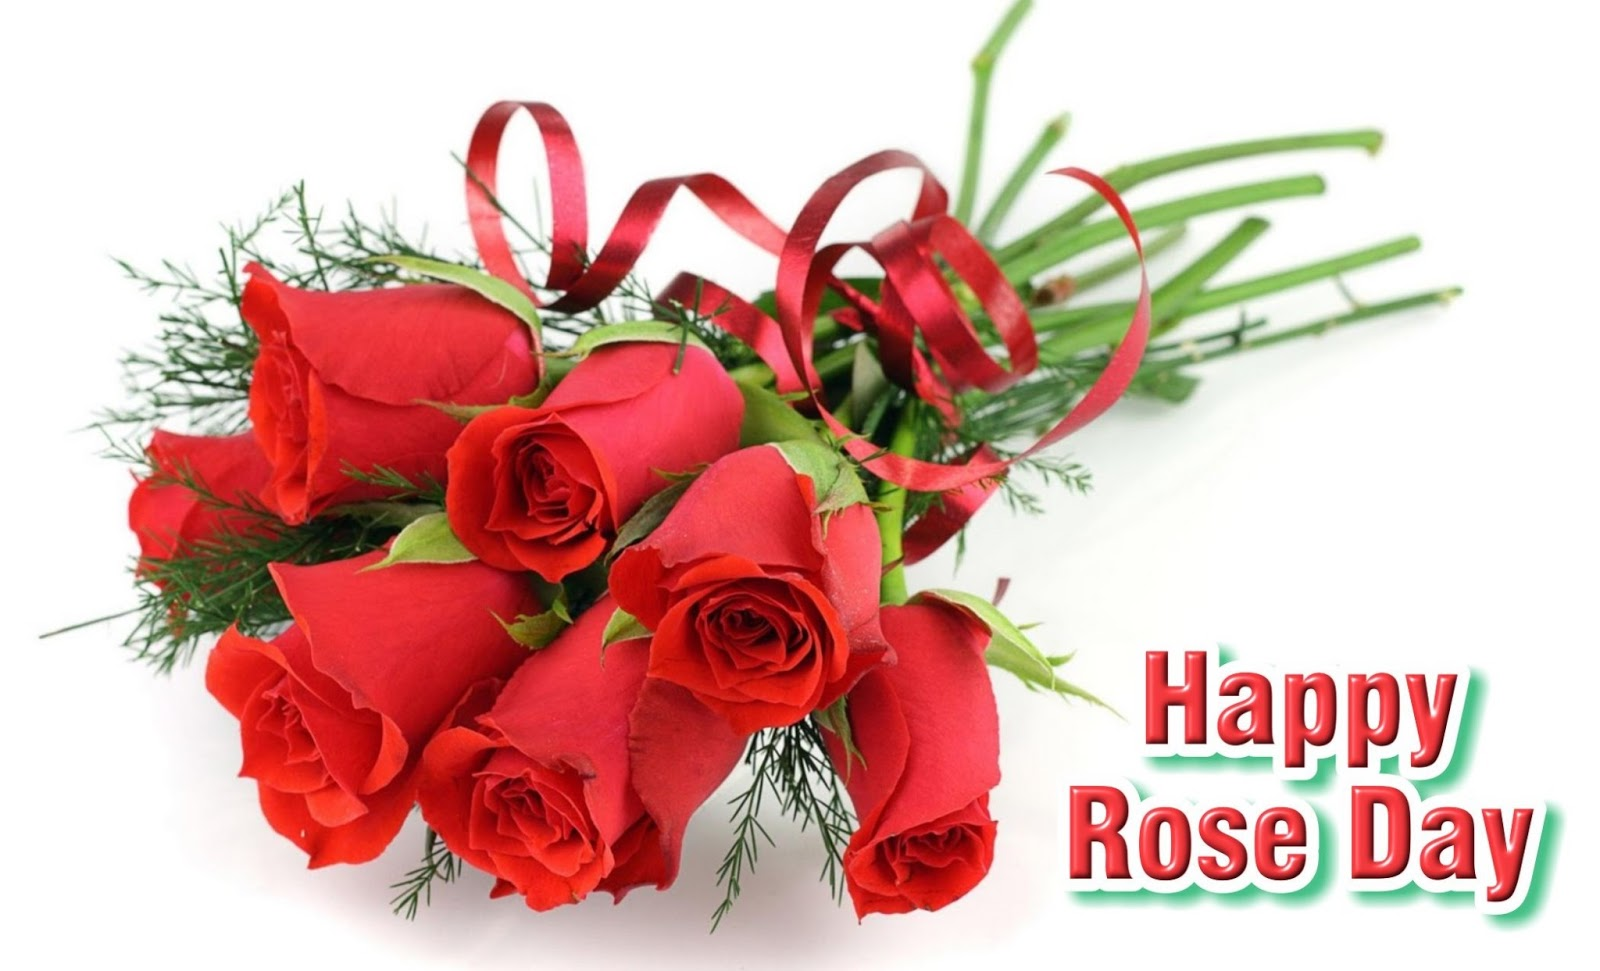 Happy Rose Day 2018 HD Image For Fiance